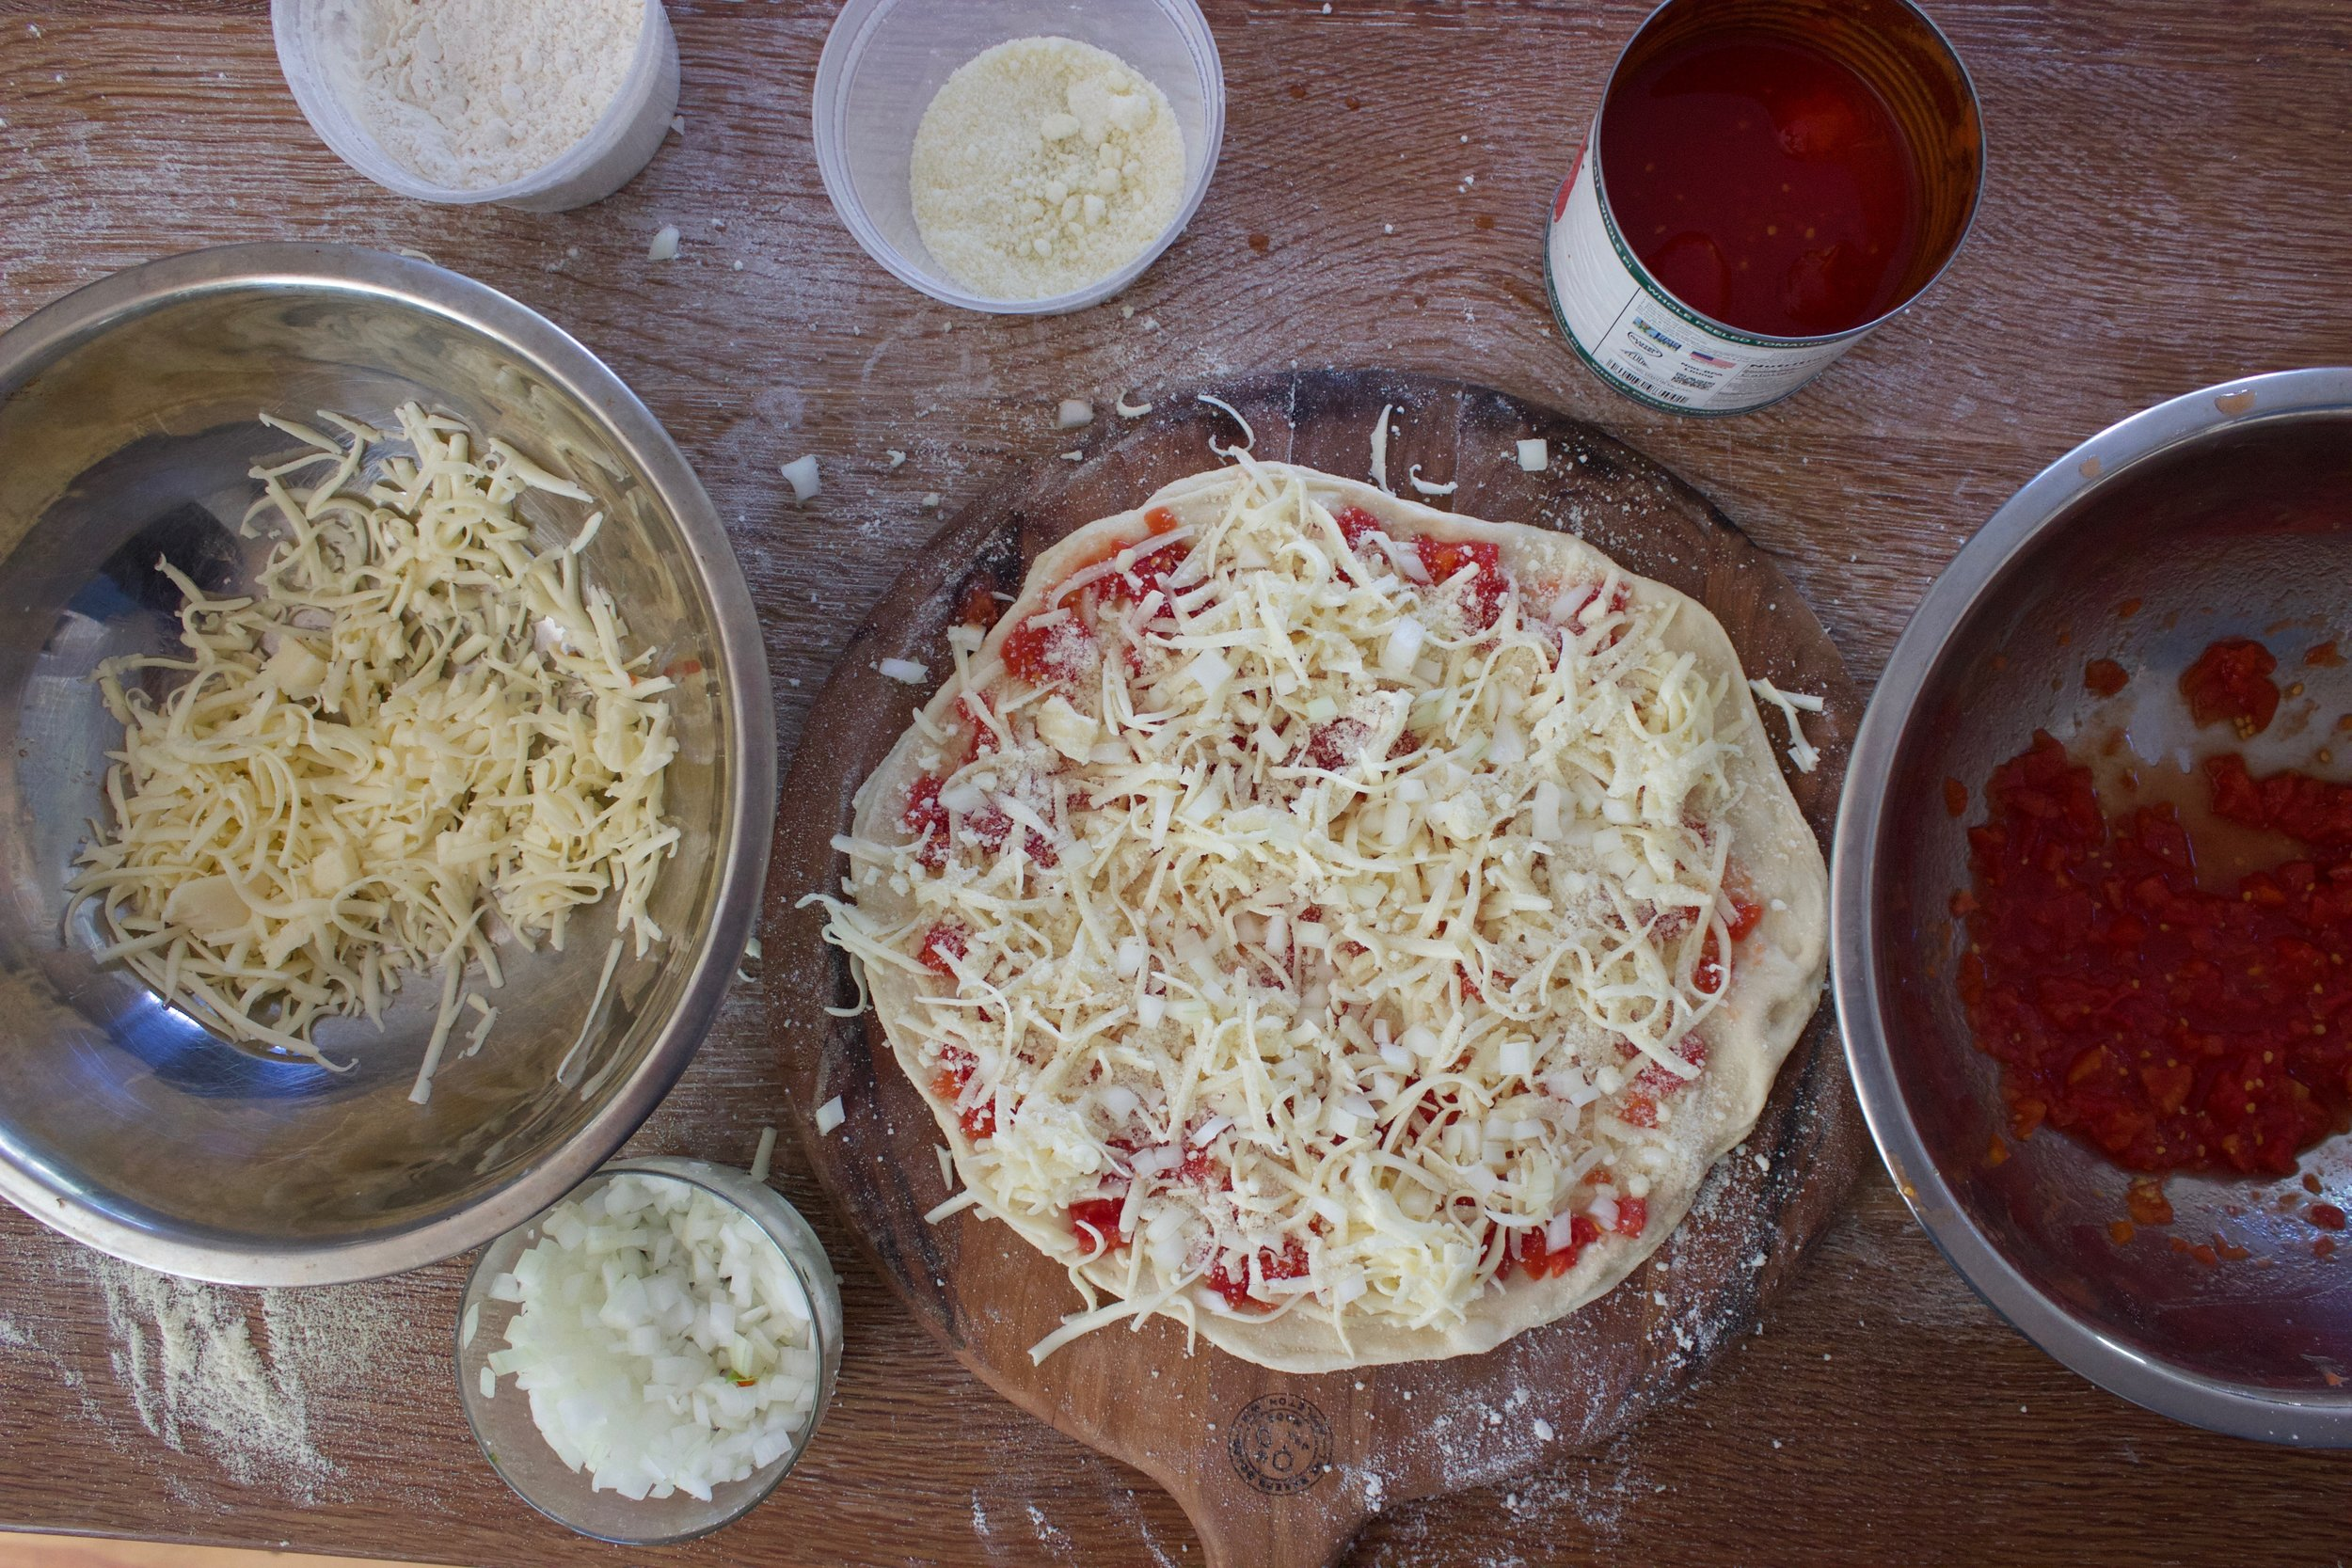 The dough stretched out beautifully. We topped this one with tomato sauce, shredded fontina and chopped white onion.